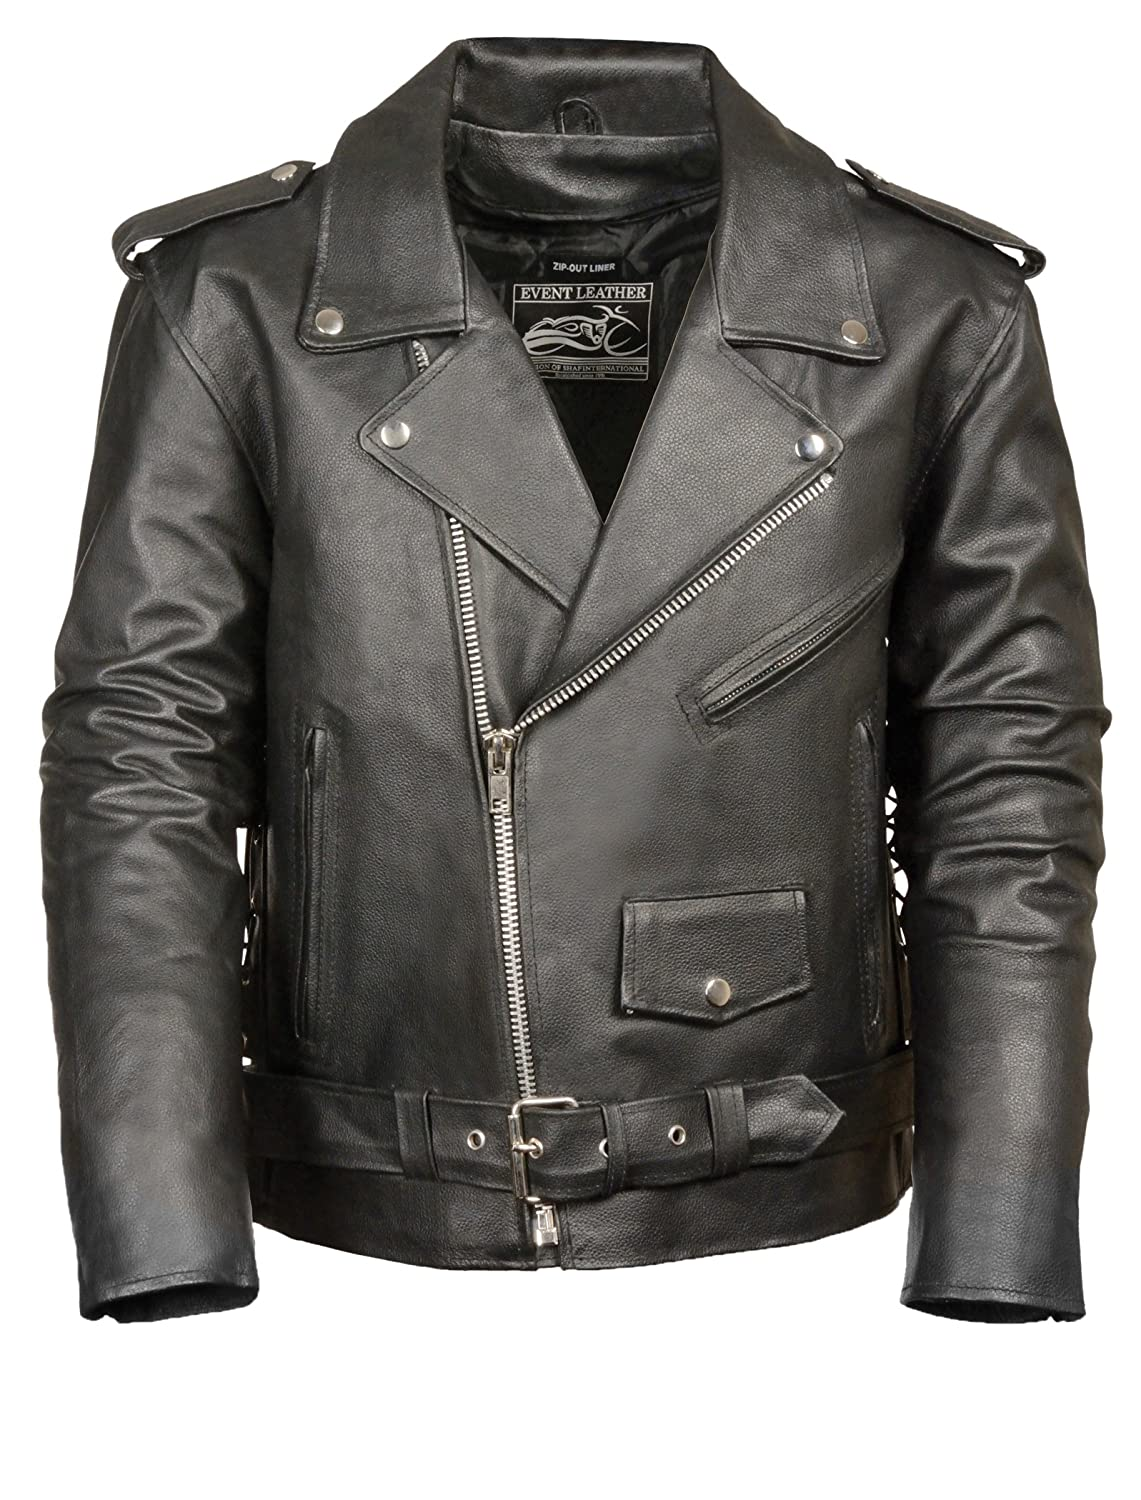 Event Biker Leather Men's Motorcycle Jacket